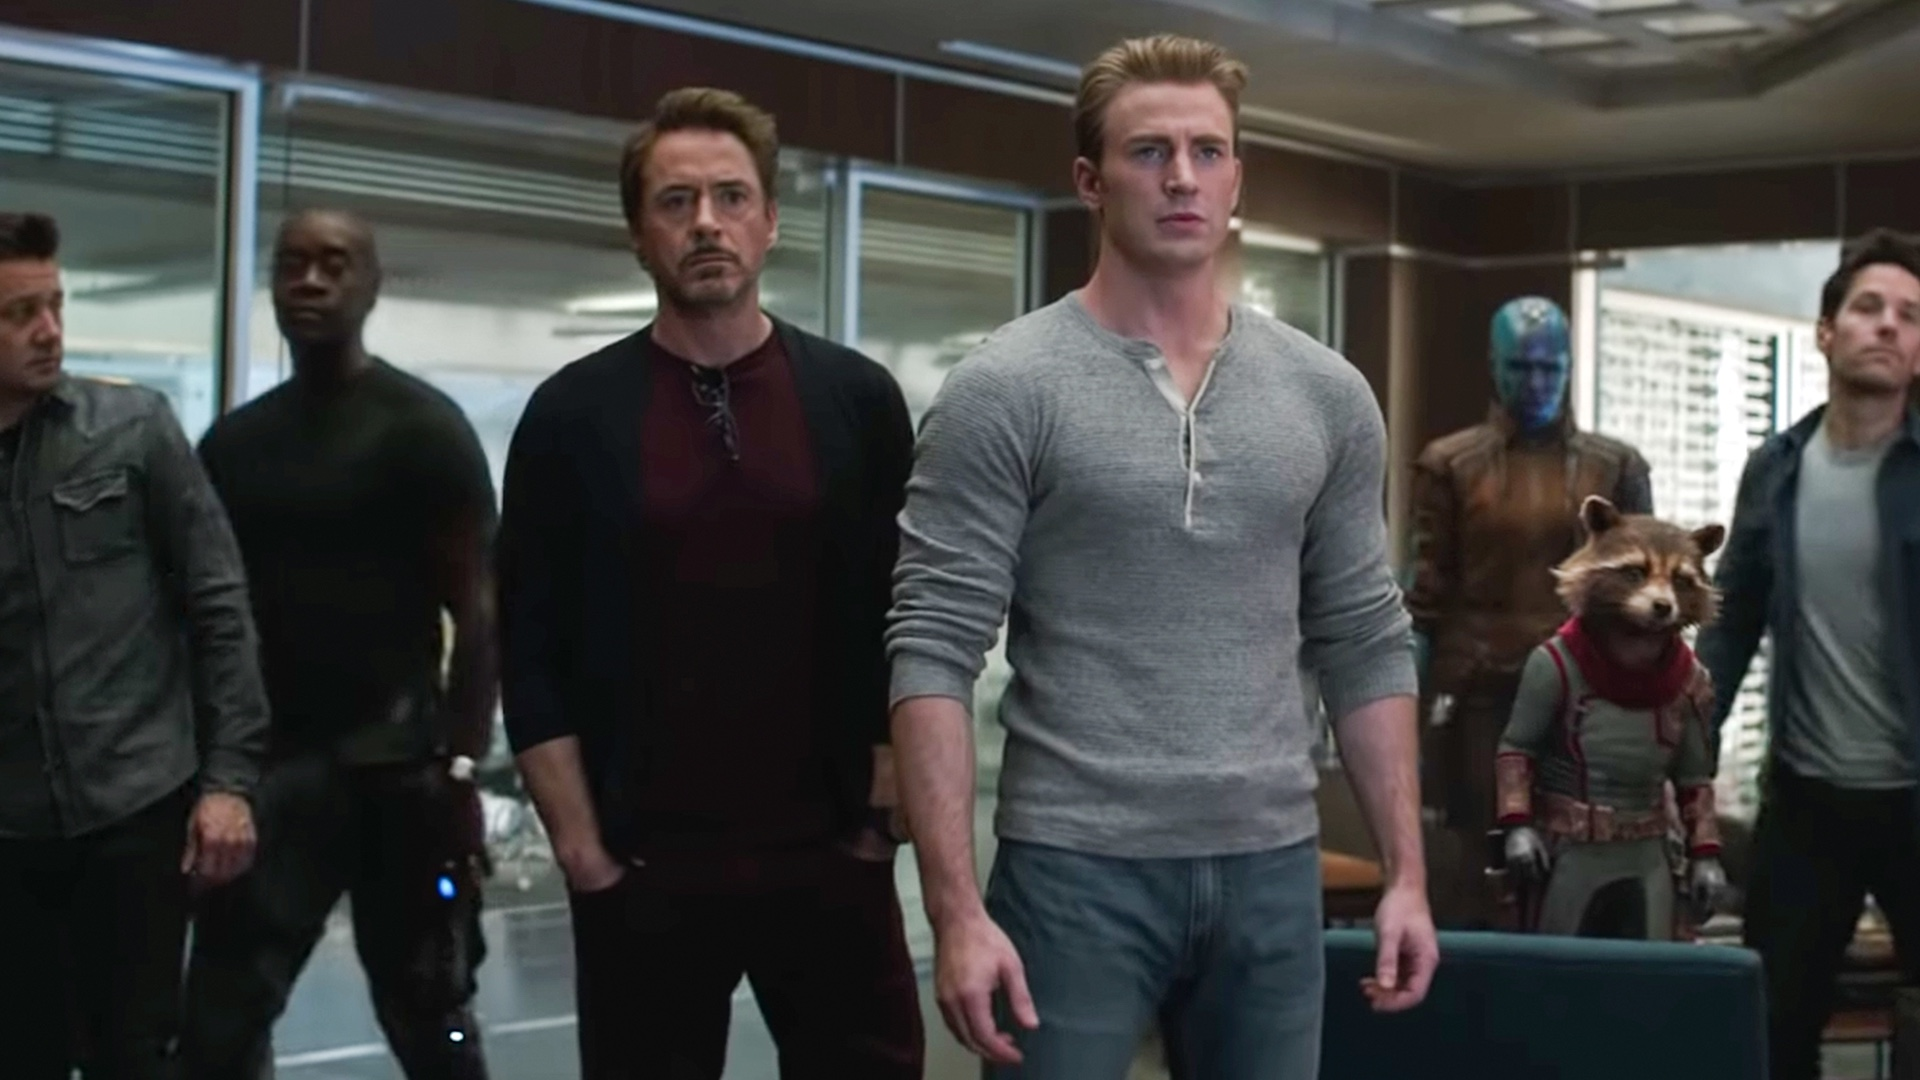 new-clip-from-avengers-endgame-shows-the-team-planning-to-take-down-thanos-social.jpg